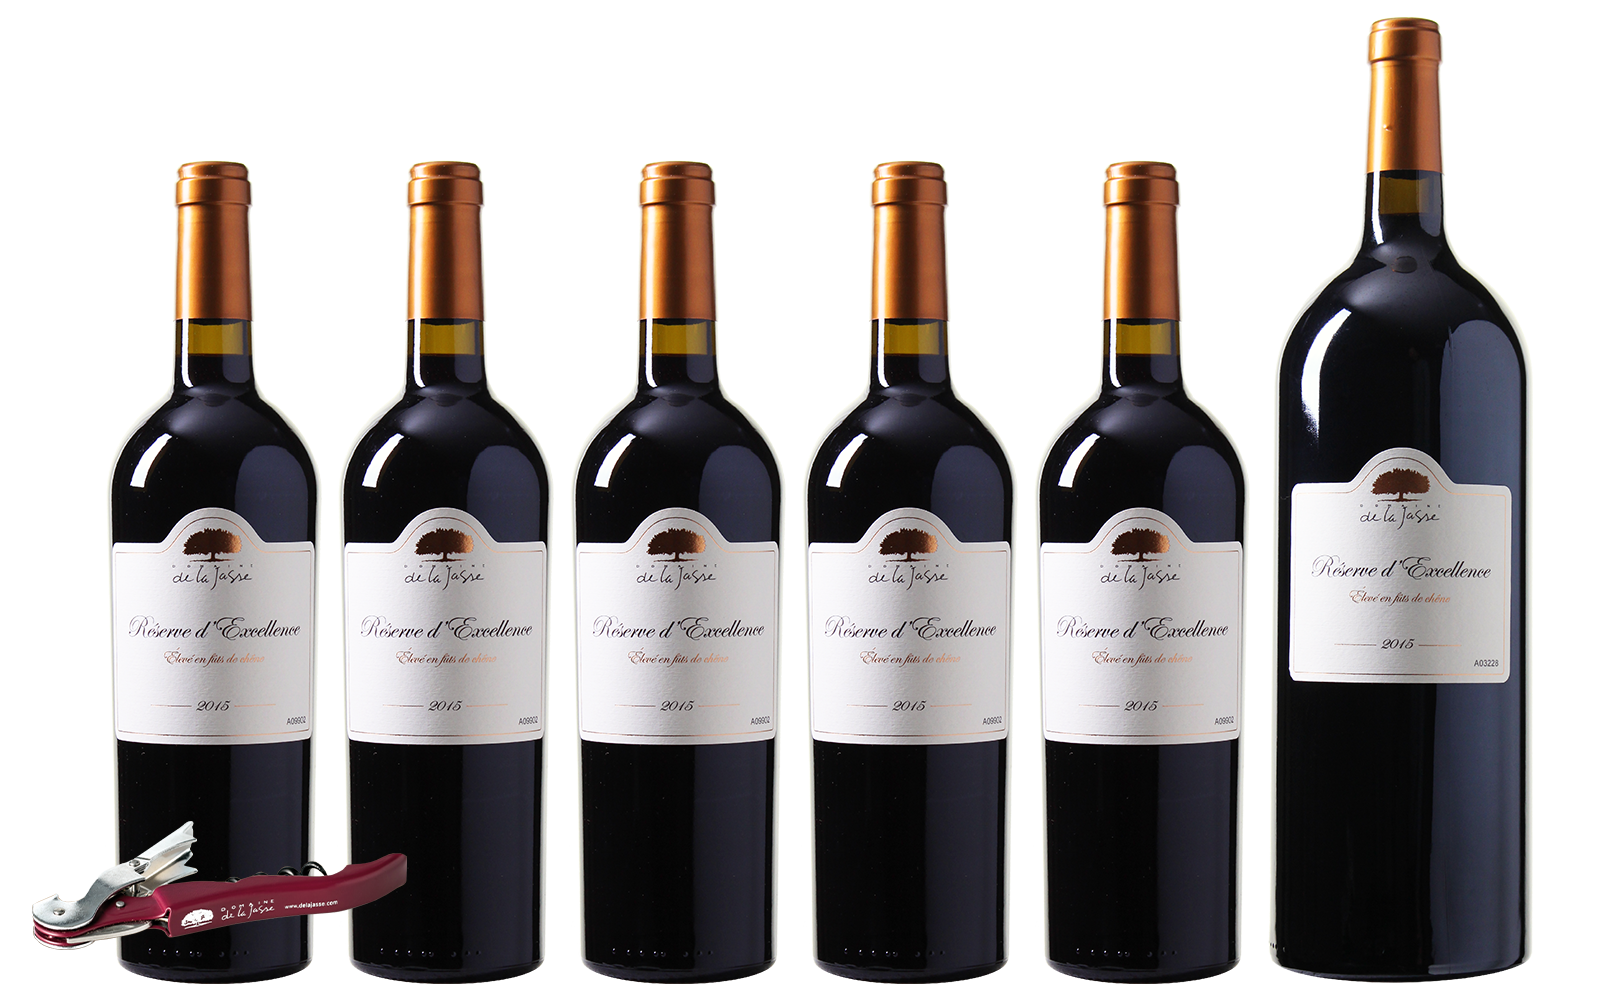 Domaine de la Jasse R�serve d'Excellence + Magnumfles